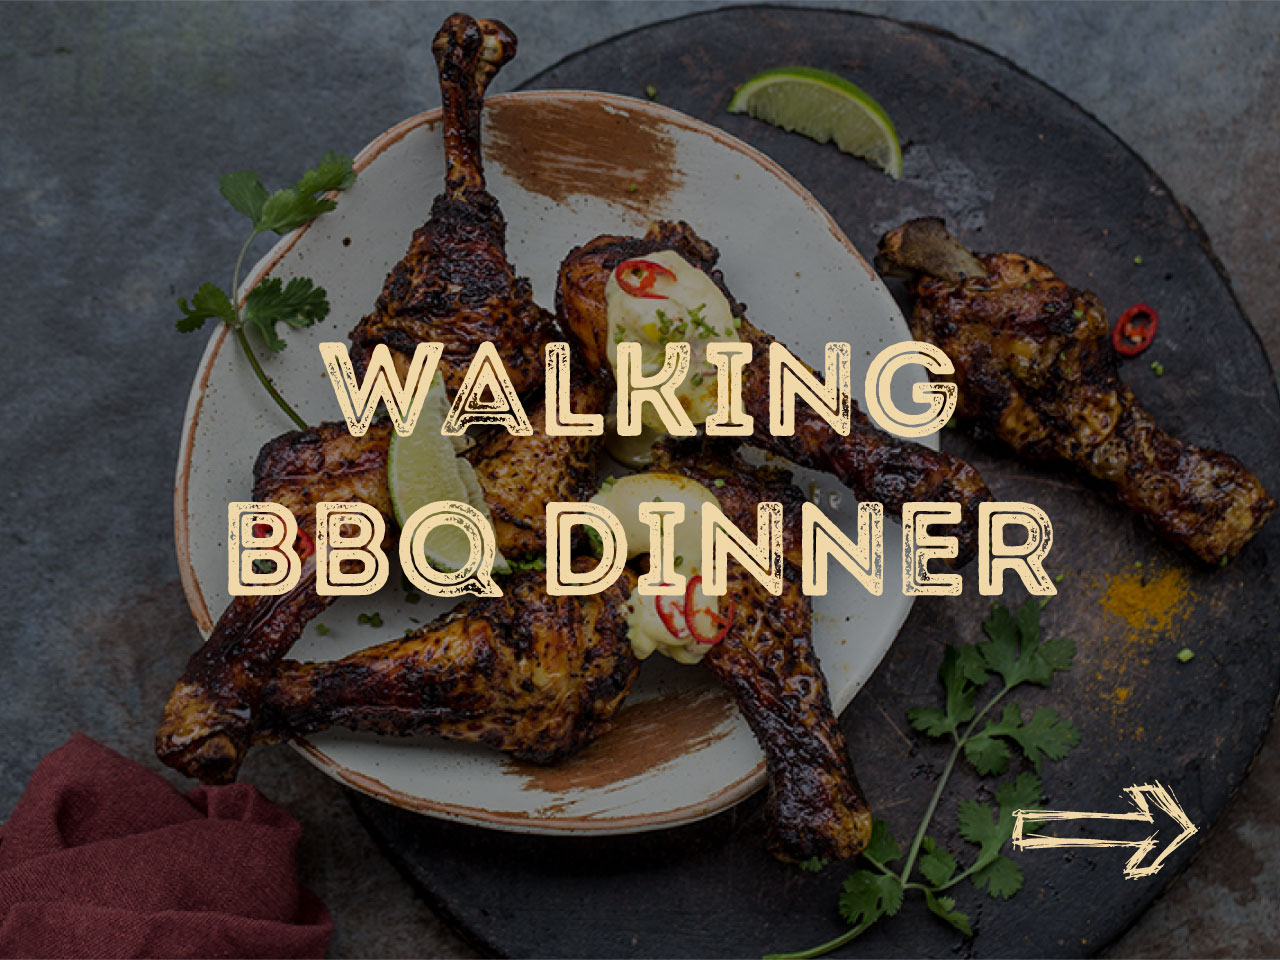 Walking BBQ Dinner arrangement